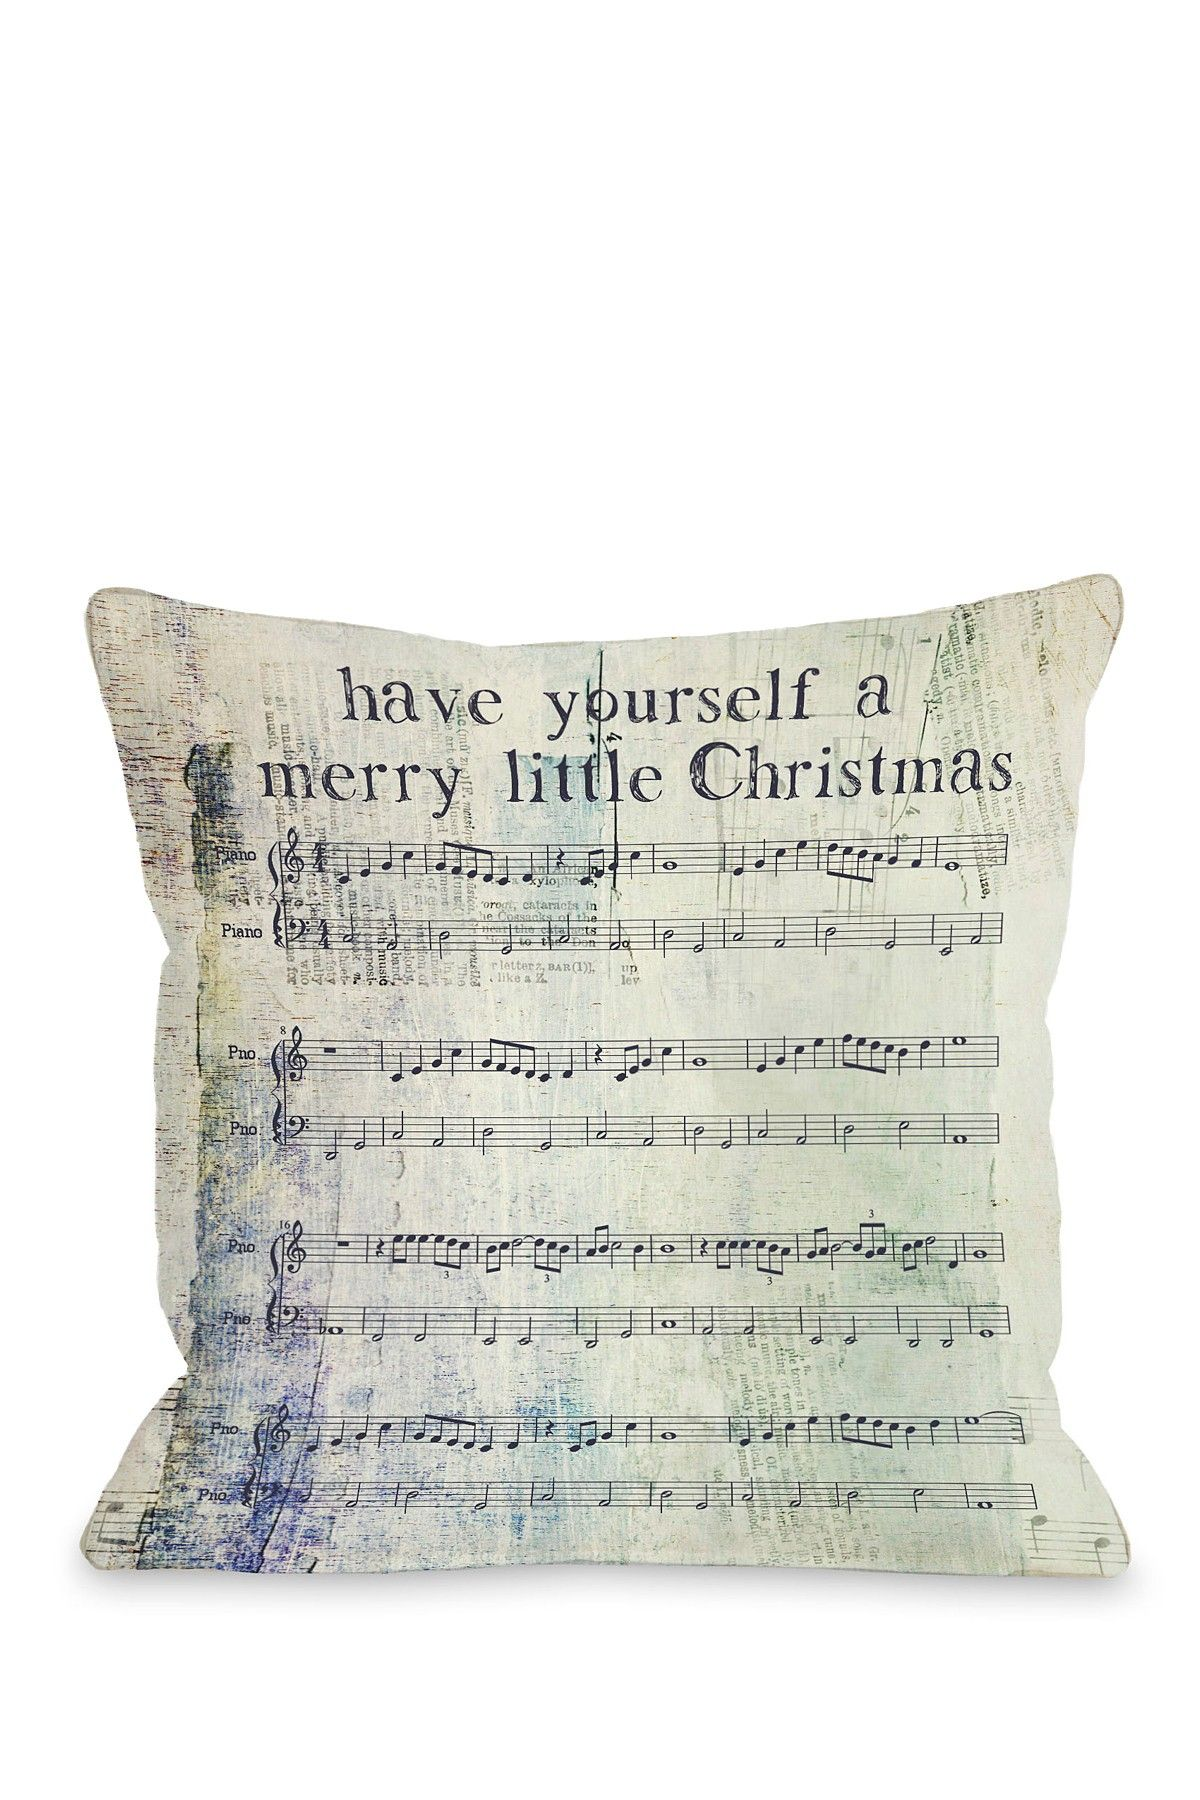 Merry Little Christmas Sheet Music Pillow with Zipper